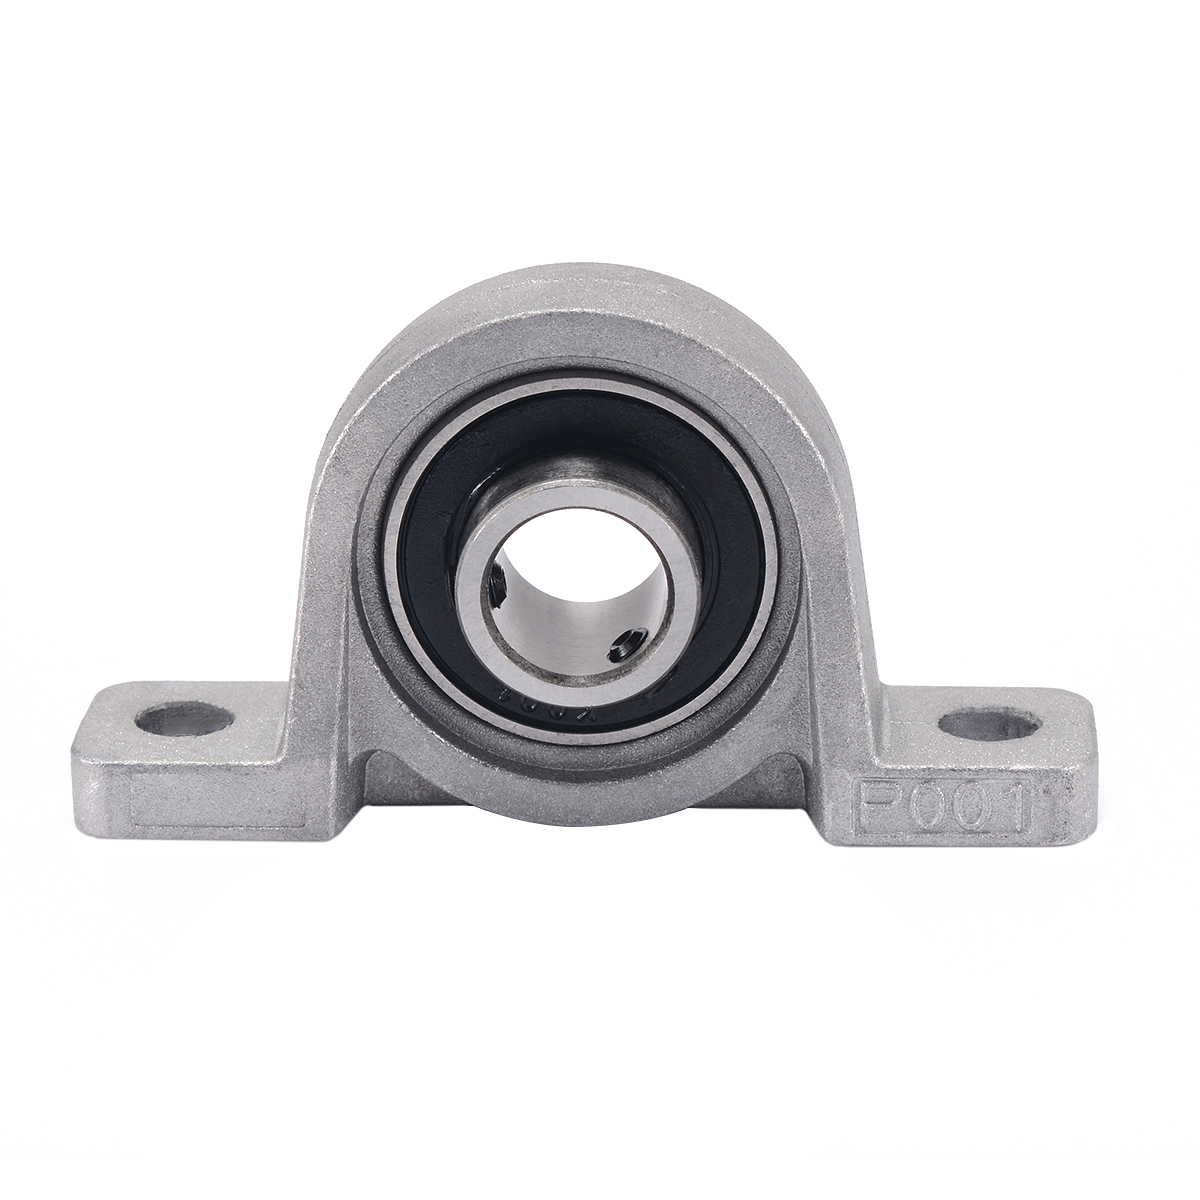 2pcs Mayitr KP001 Bearing Zinc Alloy Mounted Support Pillow Block Ball Bearings Mini DIY Housing Shaft 12mm Diameter 2pcs ufl001 pillow block ball bearing 12mm zinc alloy miniature bearings with sleeve